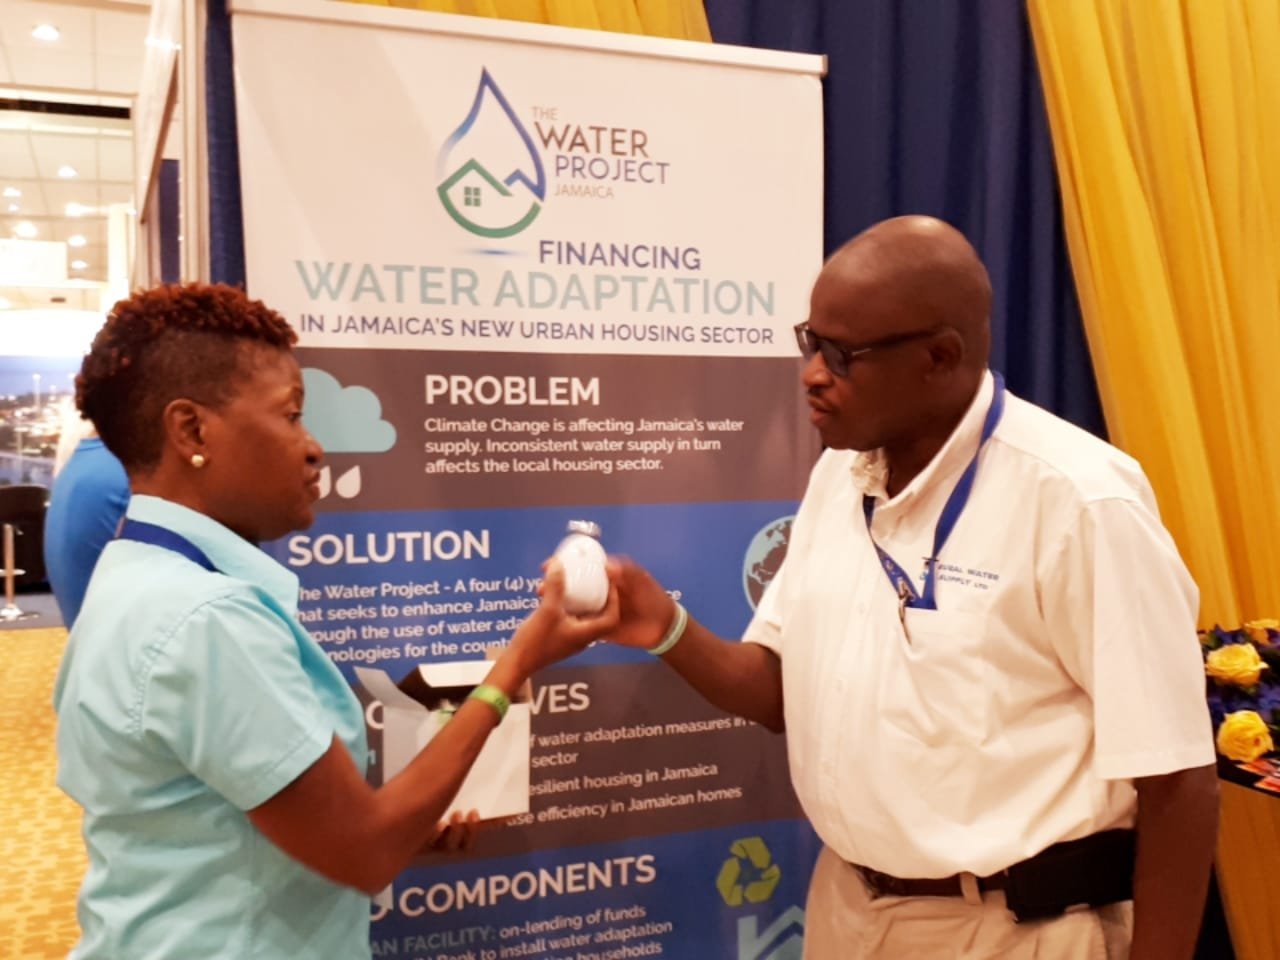 Water Project at CWWA Conference 2018-5